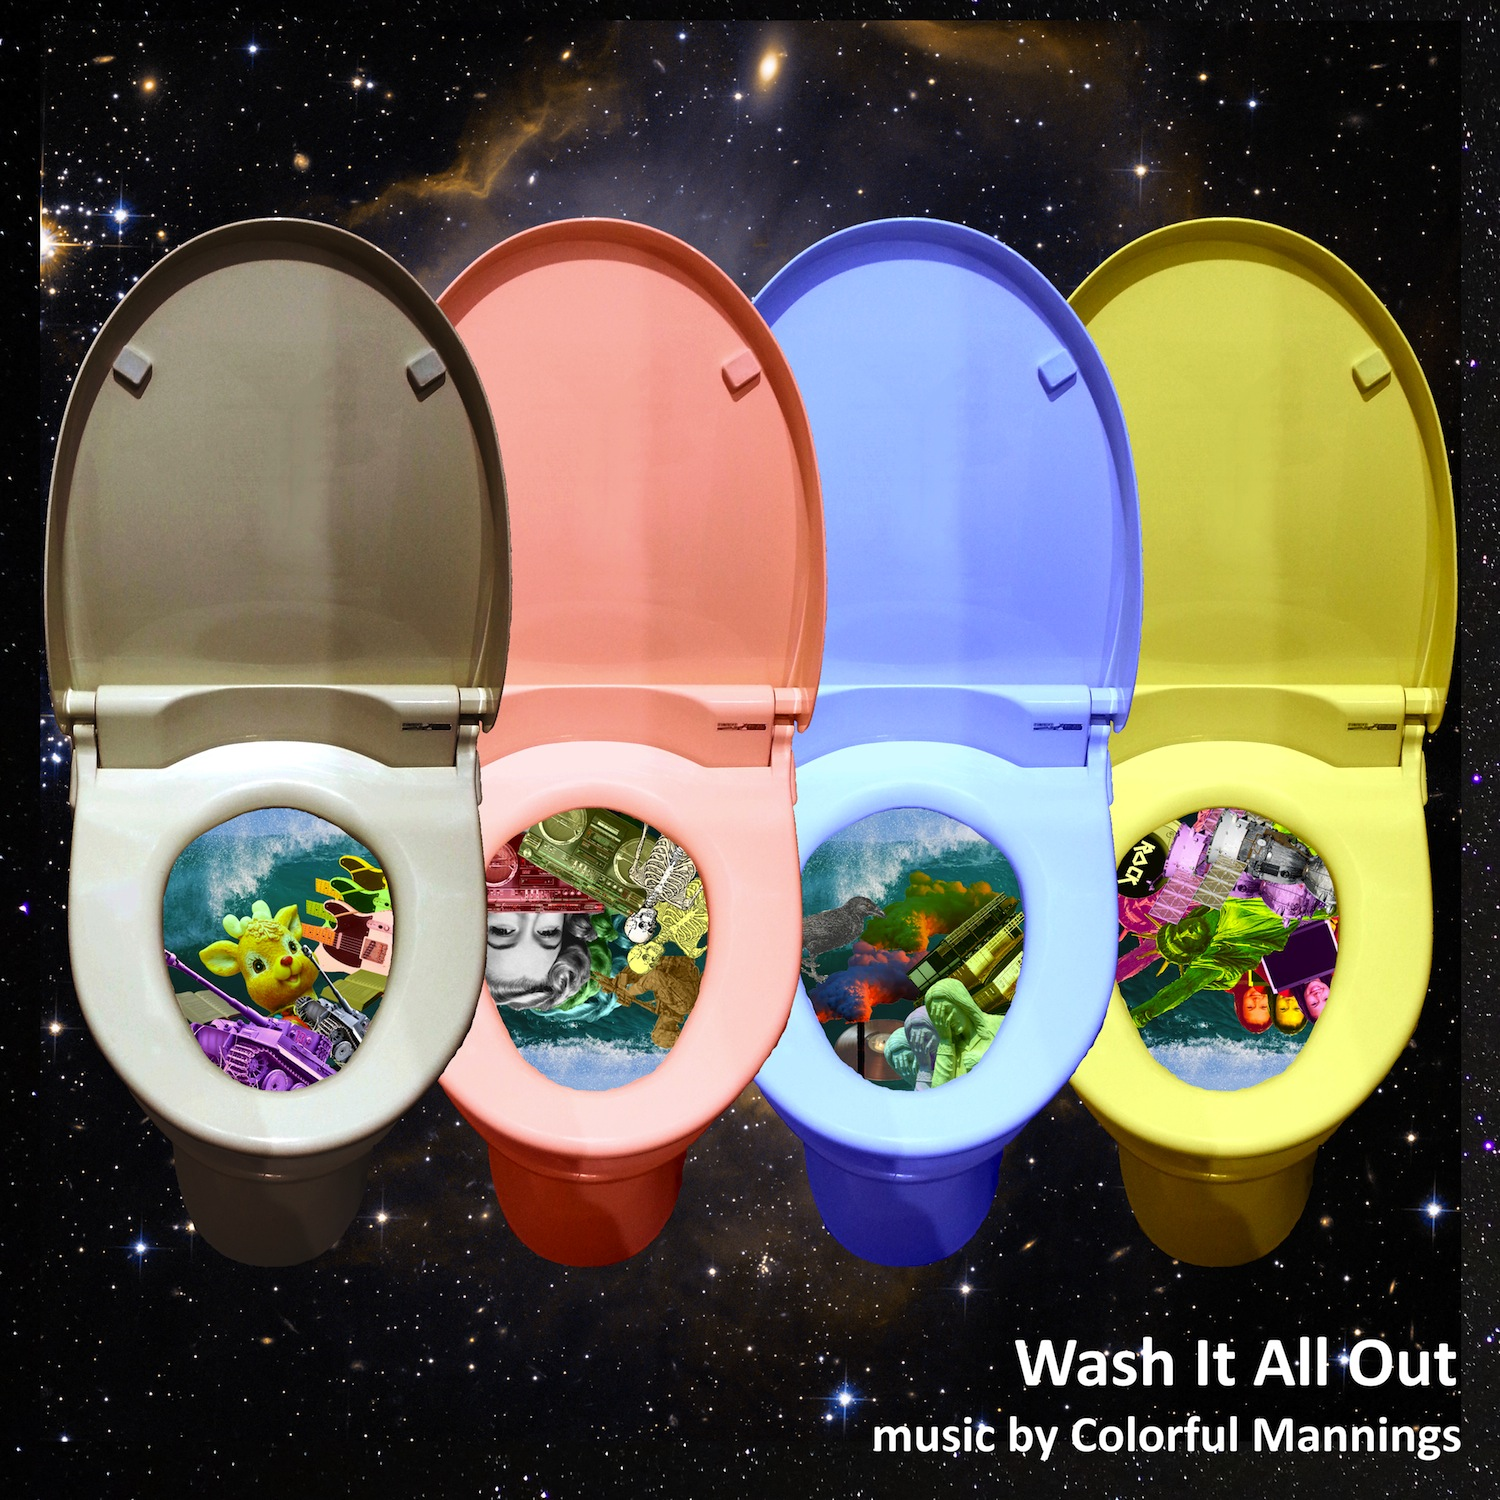 WashItAllOut_Artwork_small